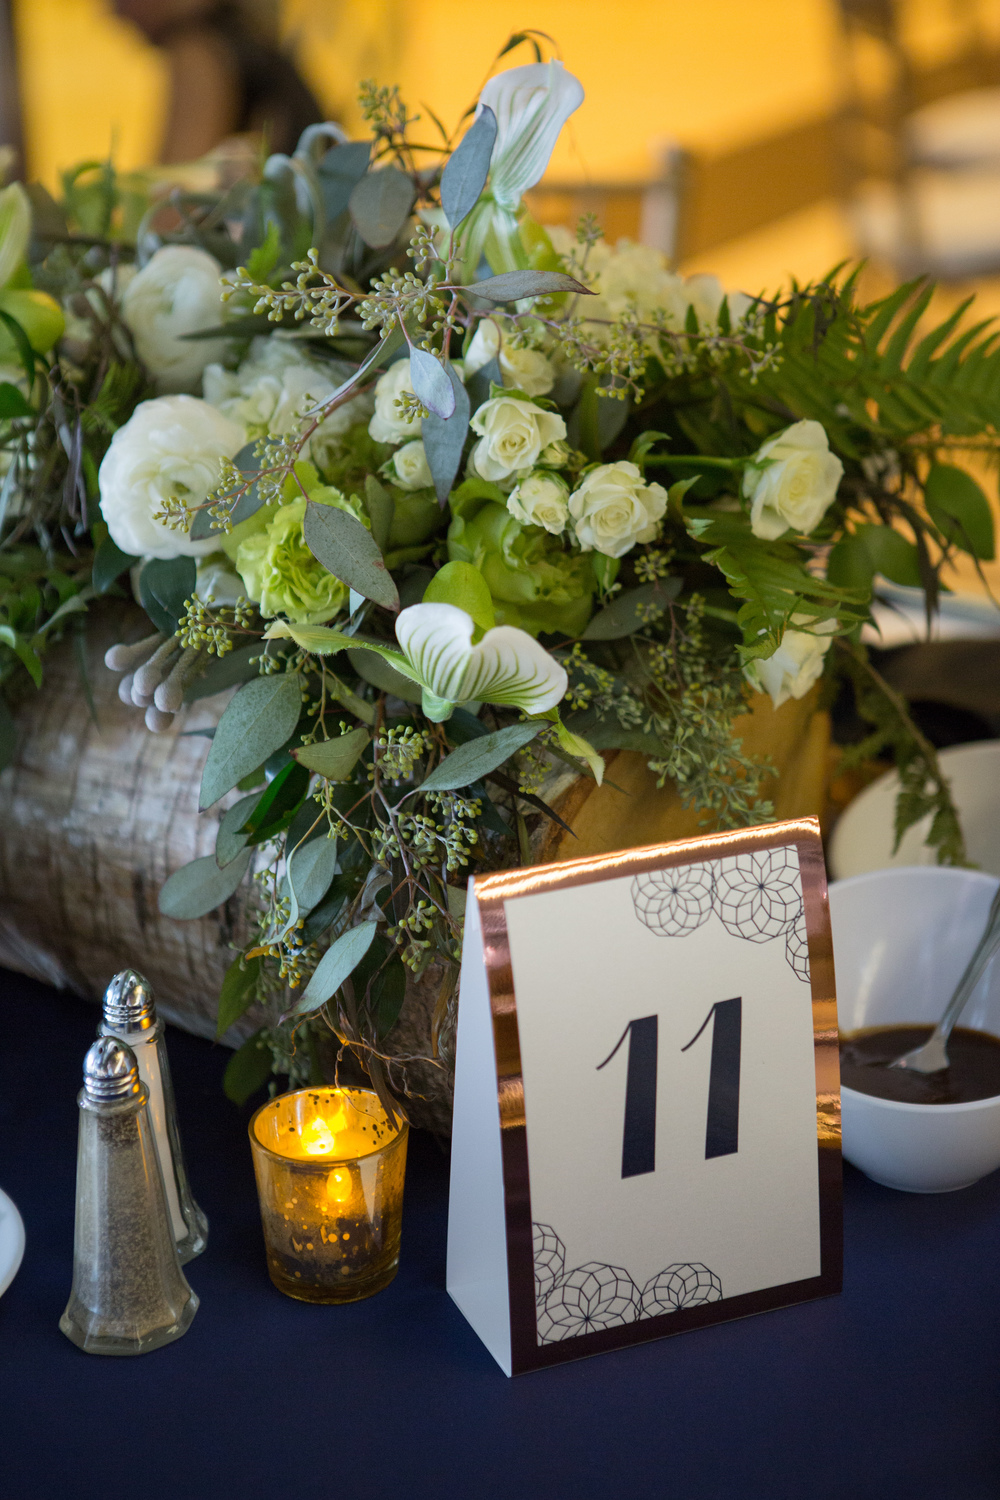 Acowsay_Cinema_MN_Wedding_Table_Number.jpg